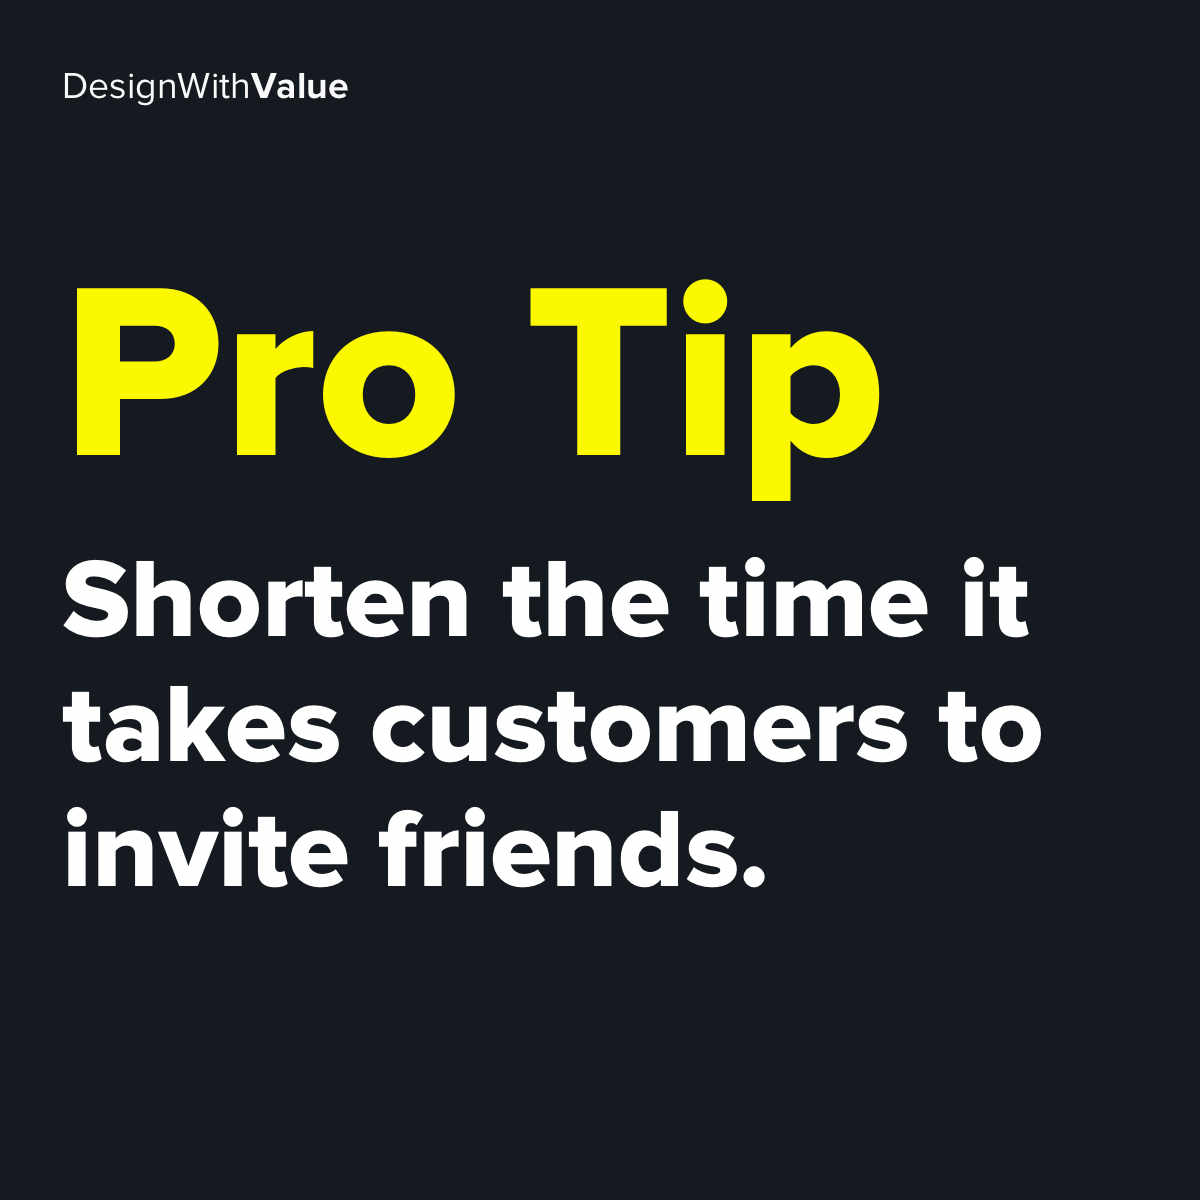 Pro tip: Shorten the time it takes customers to invite friends.